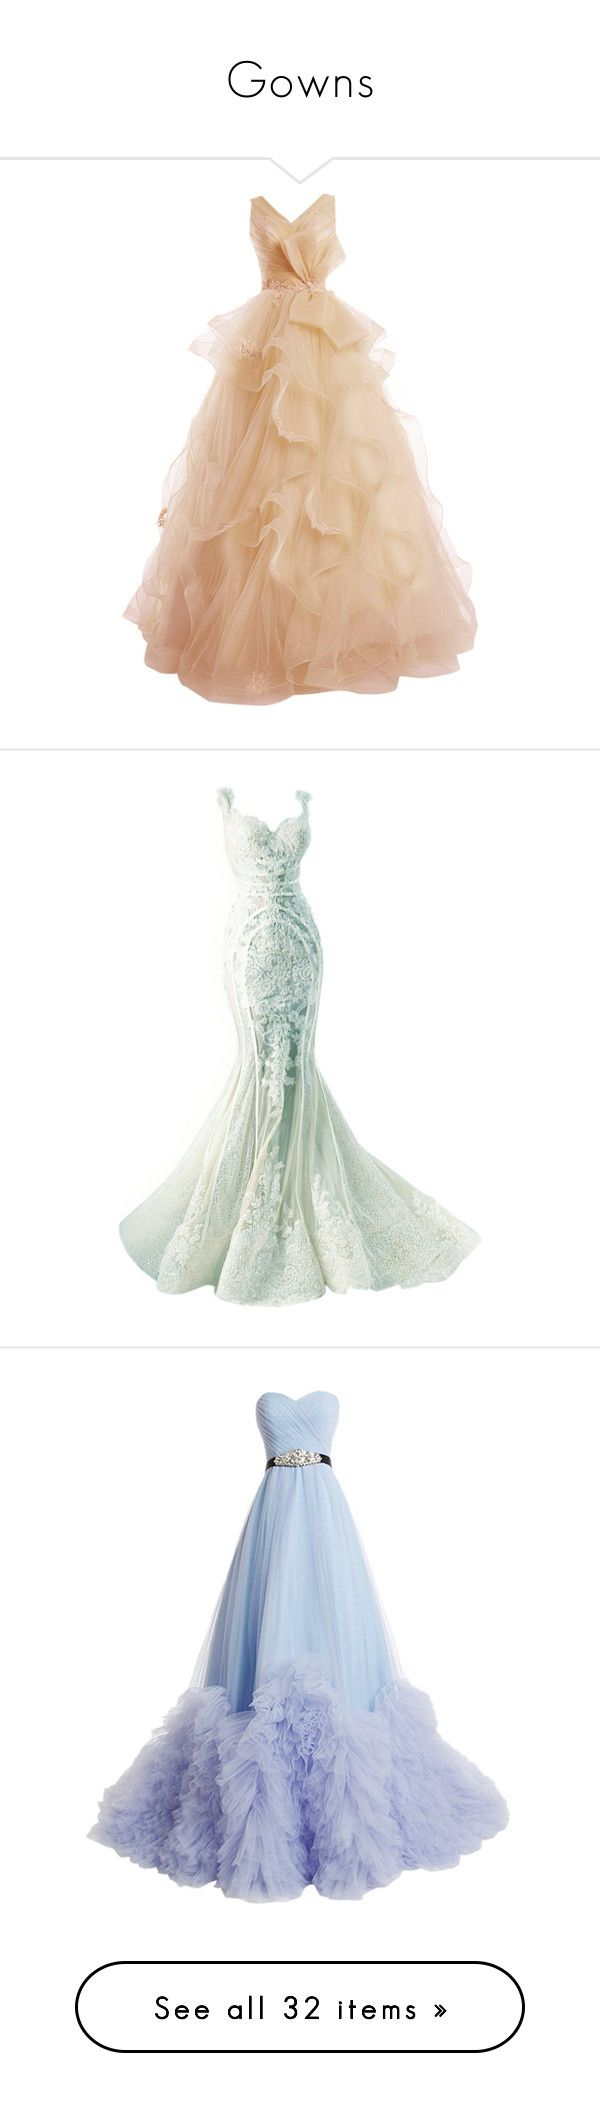 """Gowns"" by silverrise ❤ liked on Polyvore featuring dresses, gowns, vestidos, long dresses, long prom gowns, lace gown, lace dress, lace evening gowns, prom dresses and dolls"